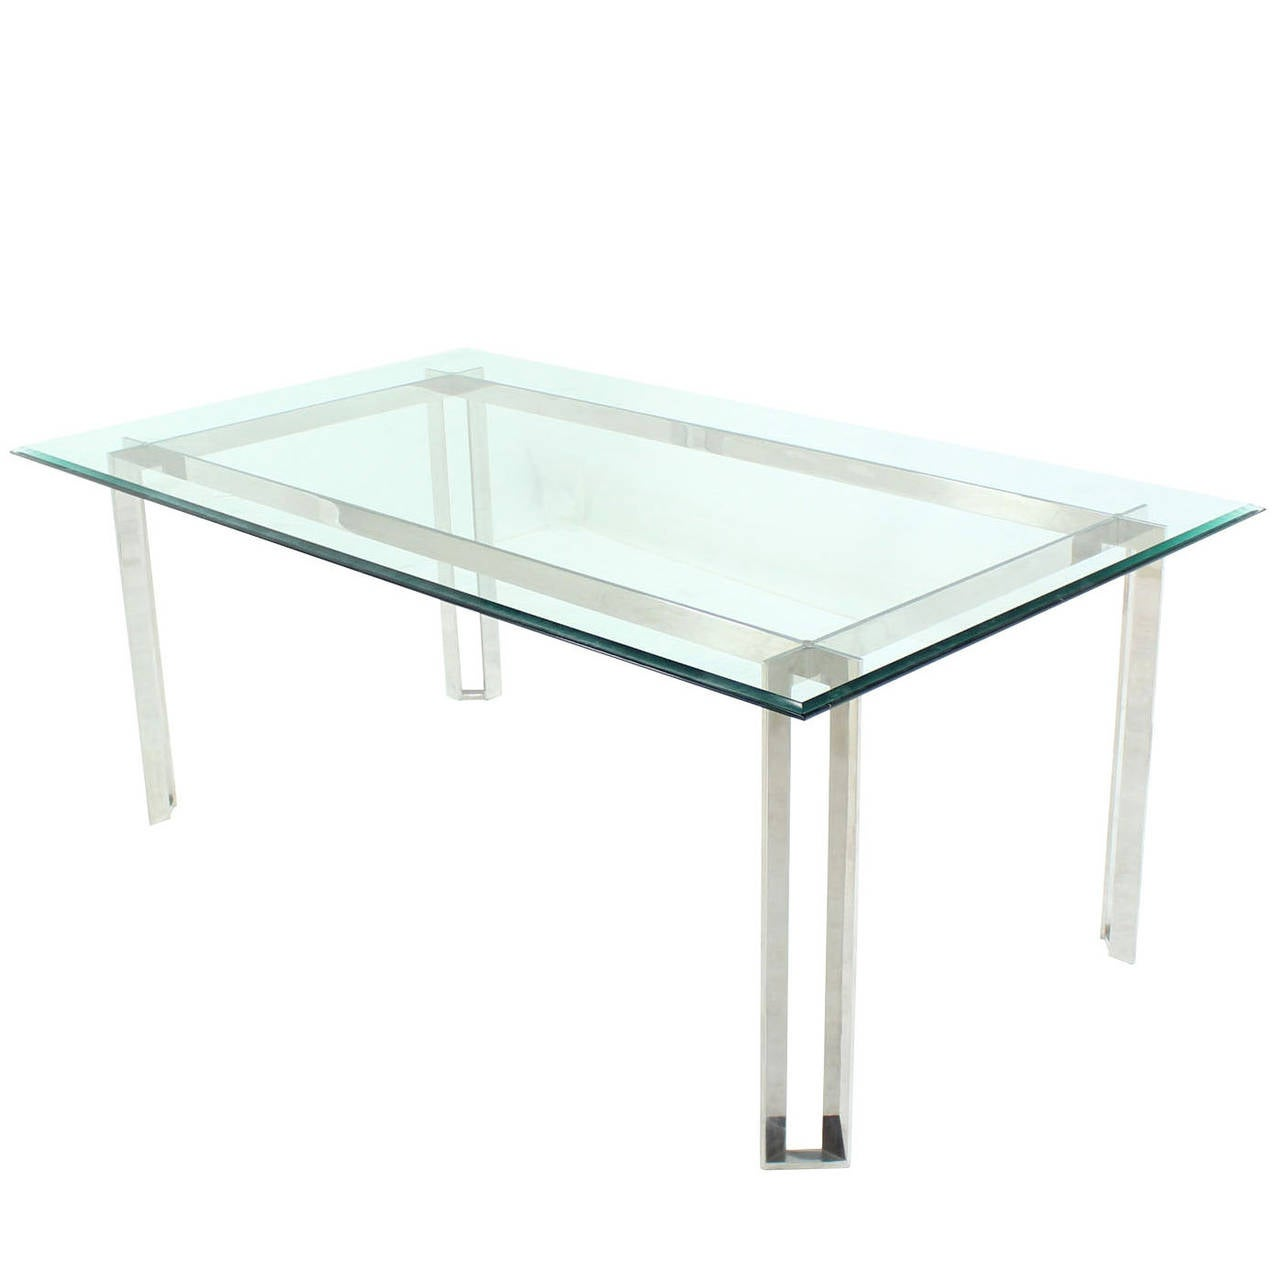 Polished Stainless Steel And Thick Glass Top Dining Room